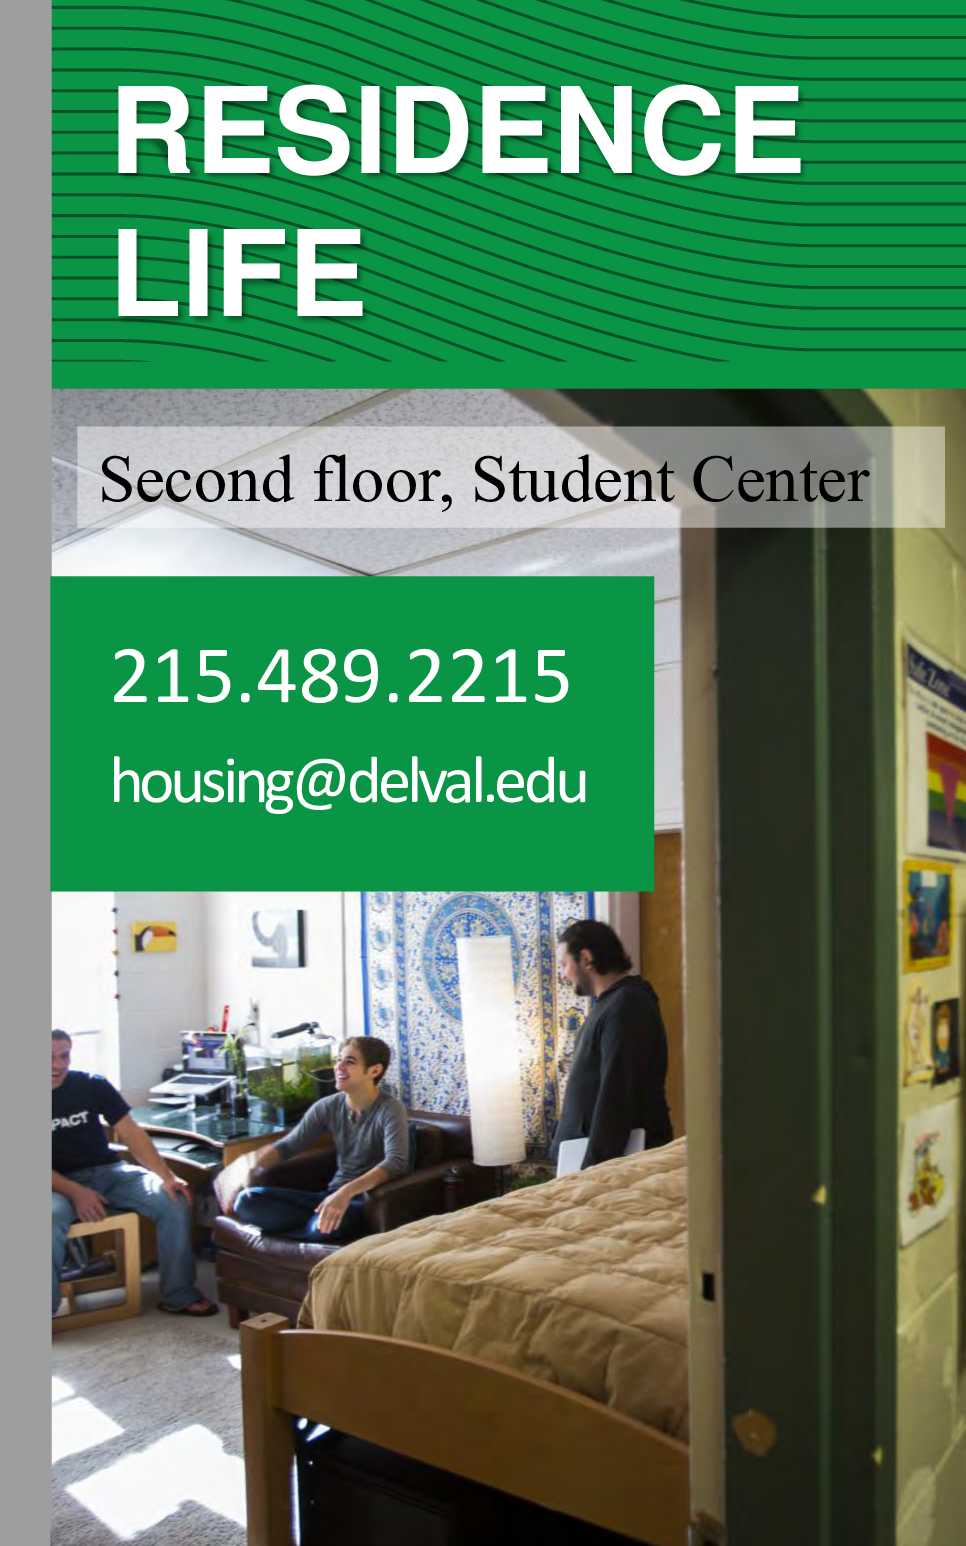 Information regarding Residence Life Office is as follows Start date is March 08 2017 and End Date is December 31 2025 and File is Browse and Affiliation is Department and Name is Derek Smith and Email is derek.smith@delval.edu and File Name is ResLife2_comp.jpg and Name of Ad/Event is Residence Life Office and Panel is Side and